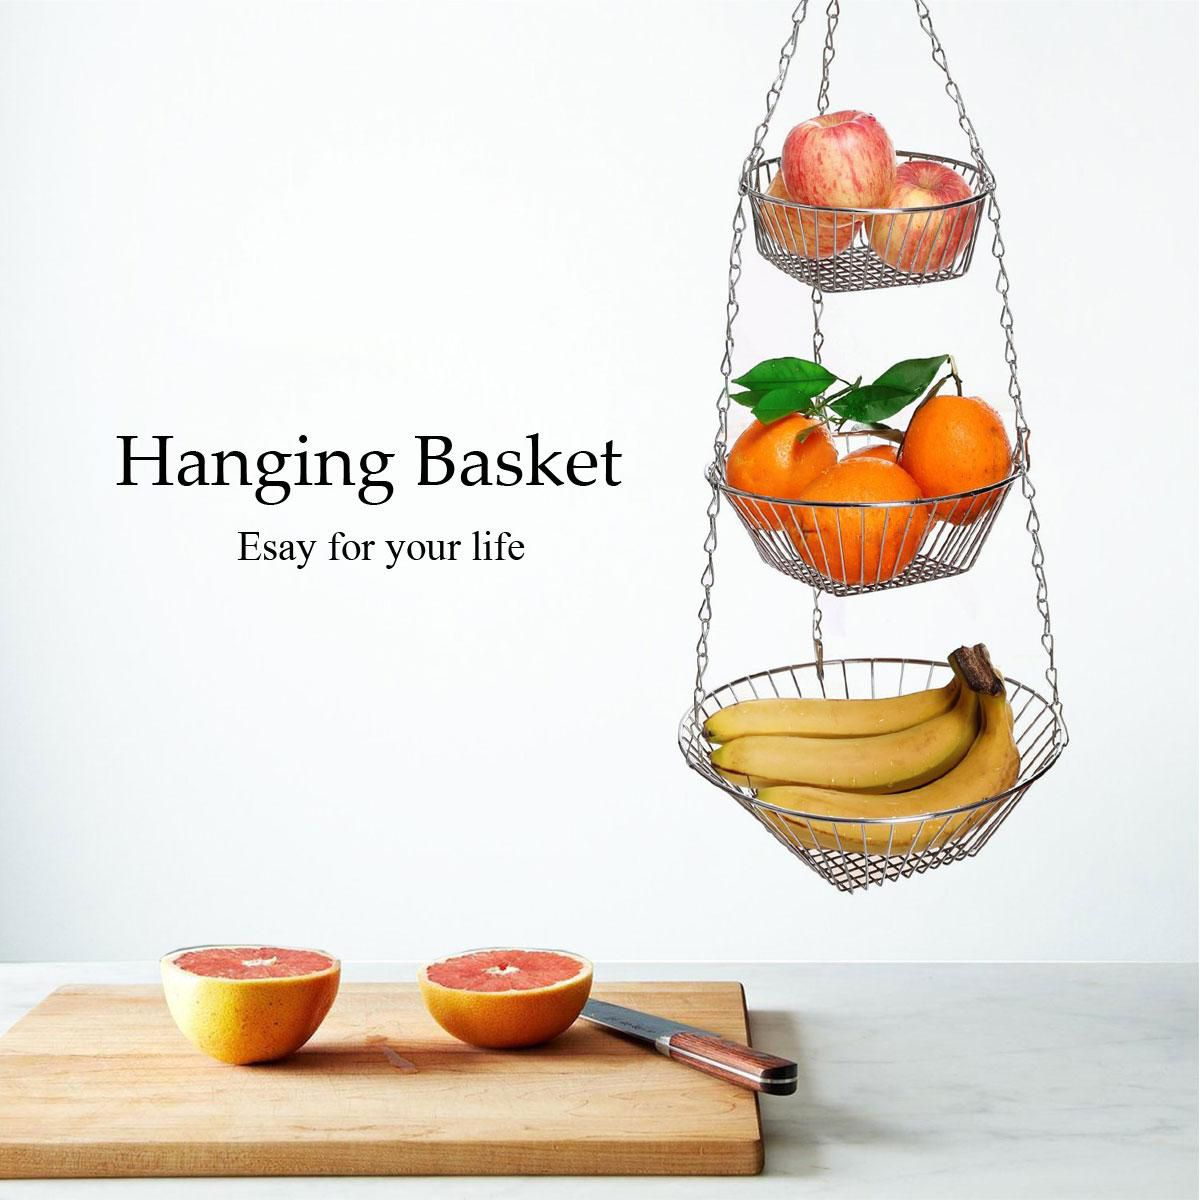 Ykpuii 3 Tier Wire Hanging Basket Fruit Vegetable Organizer Storage Kitchen Counter Set Buy Online At Best Price In India Snapdeal